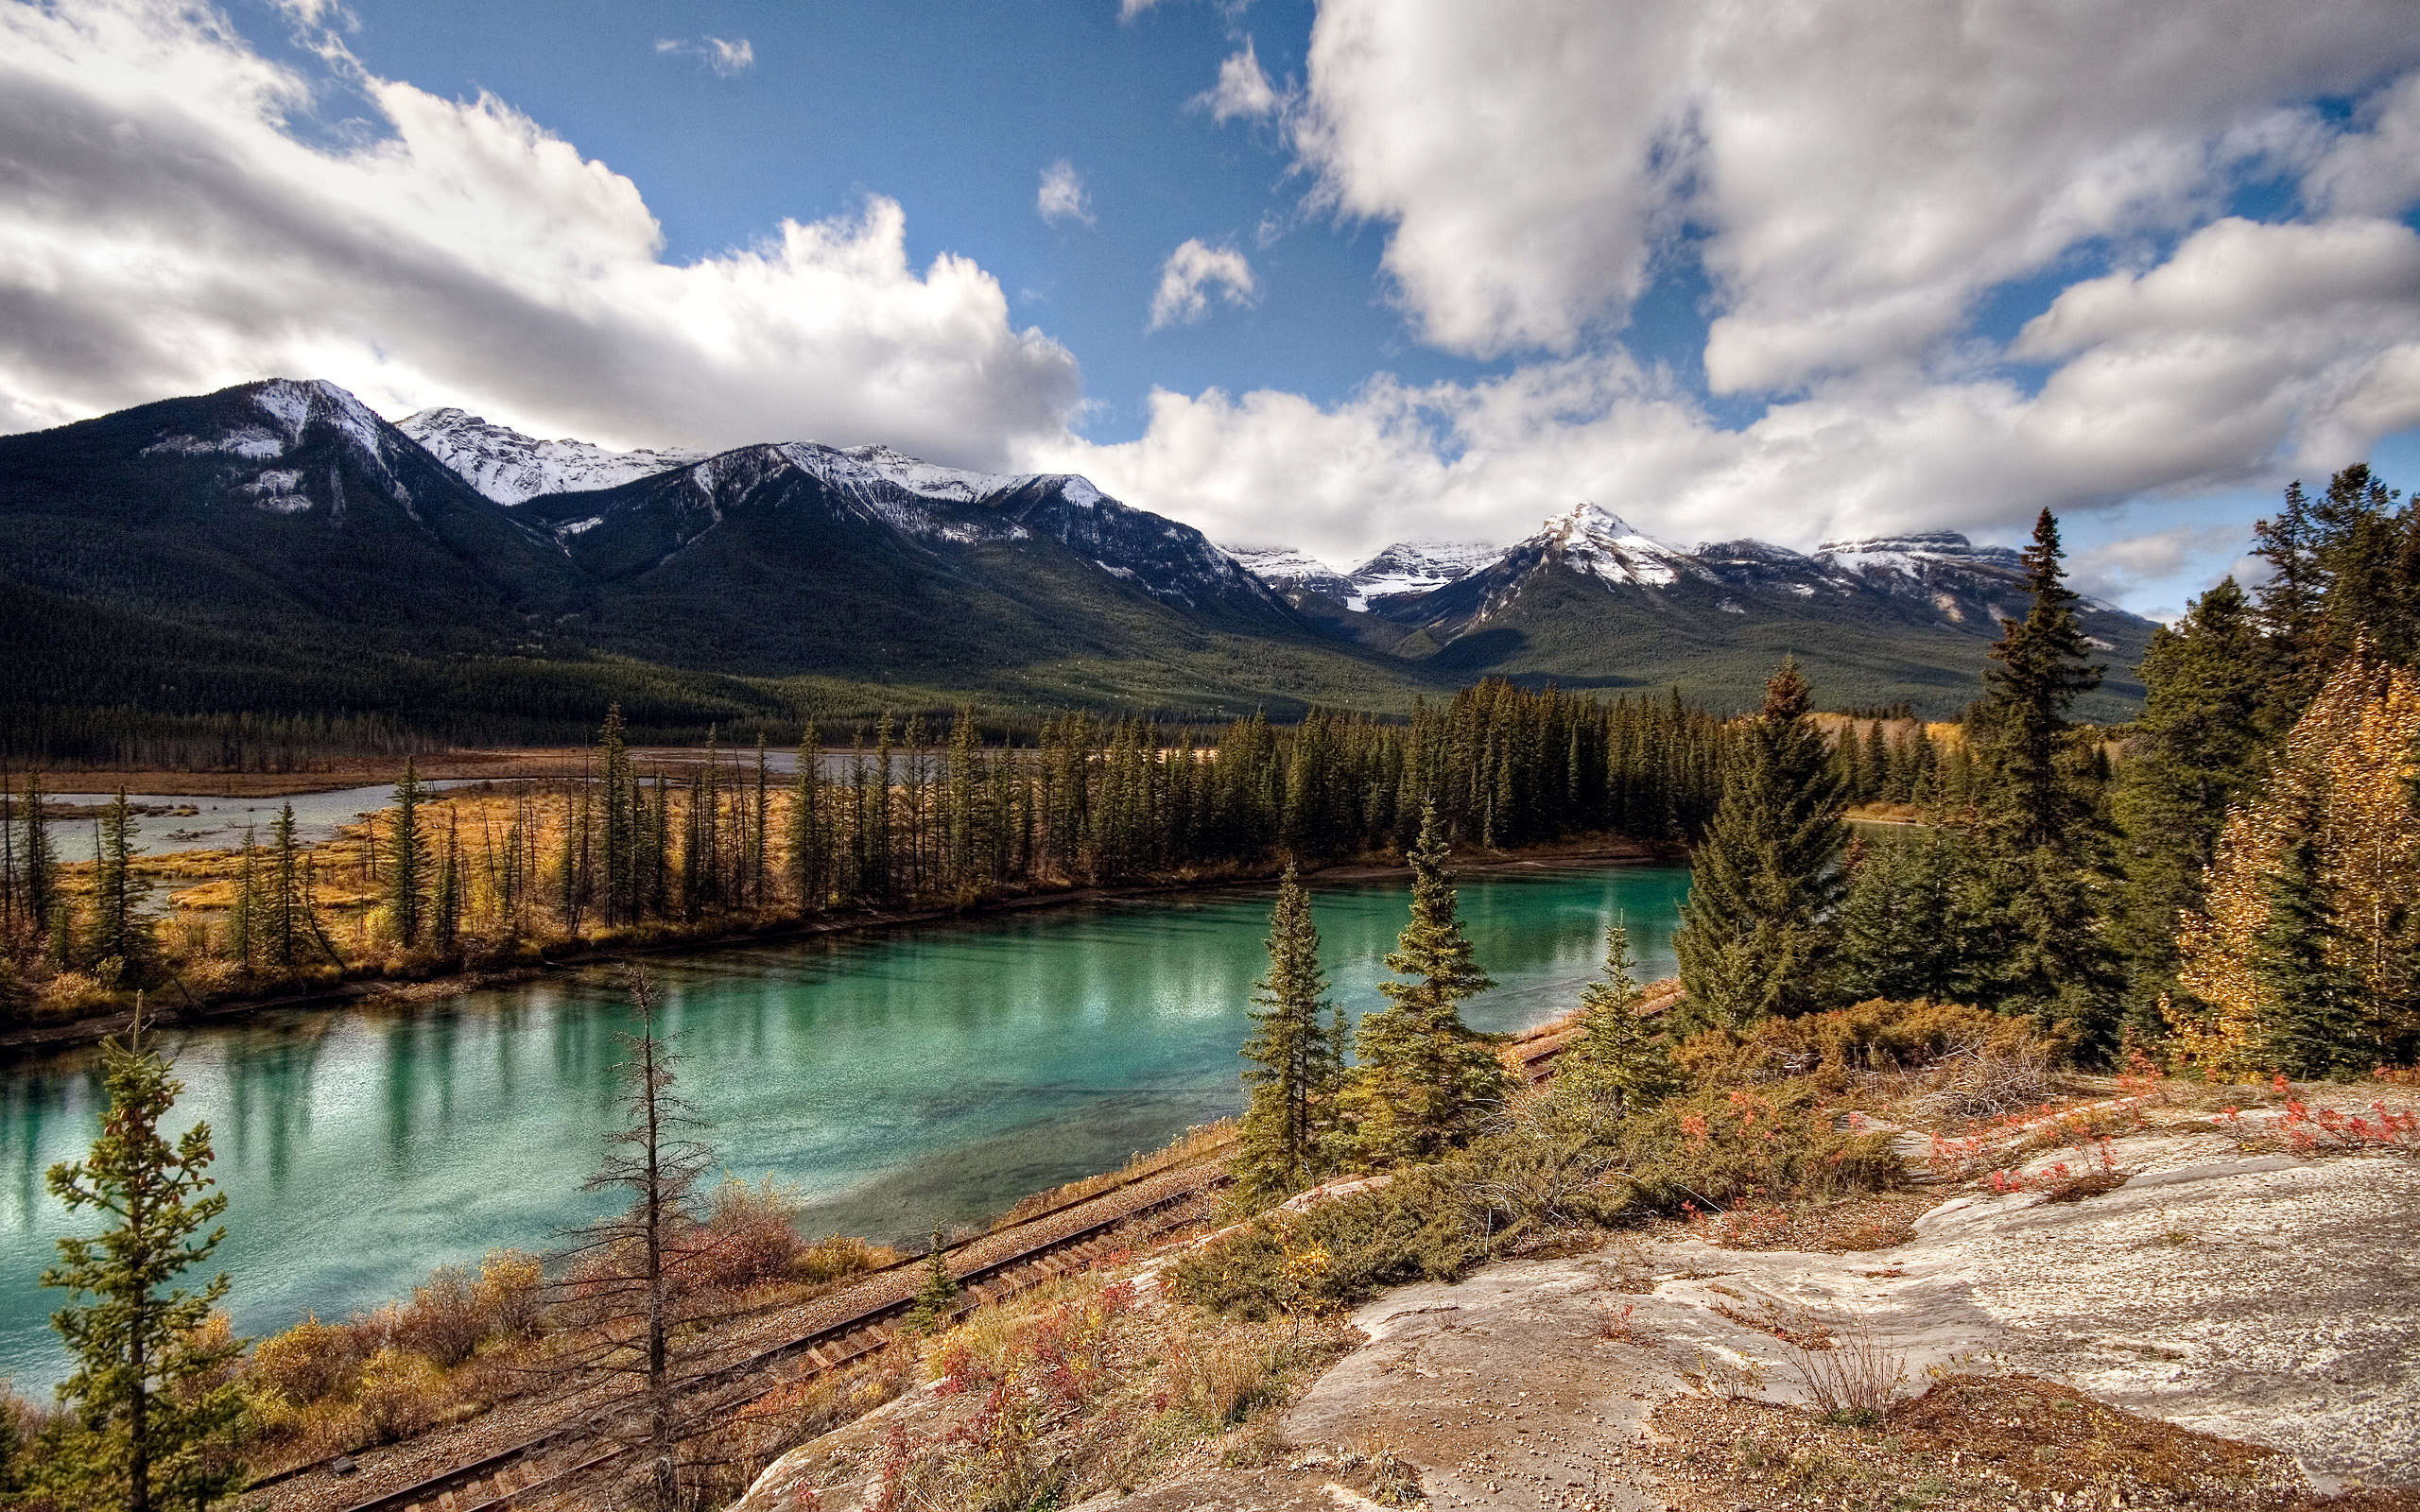 Banff National Park Canadian Pacific Railway HD Wallpaper Desivalley 2560x1600